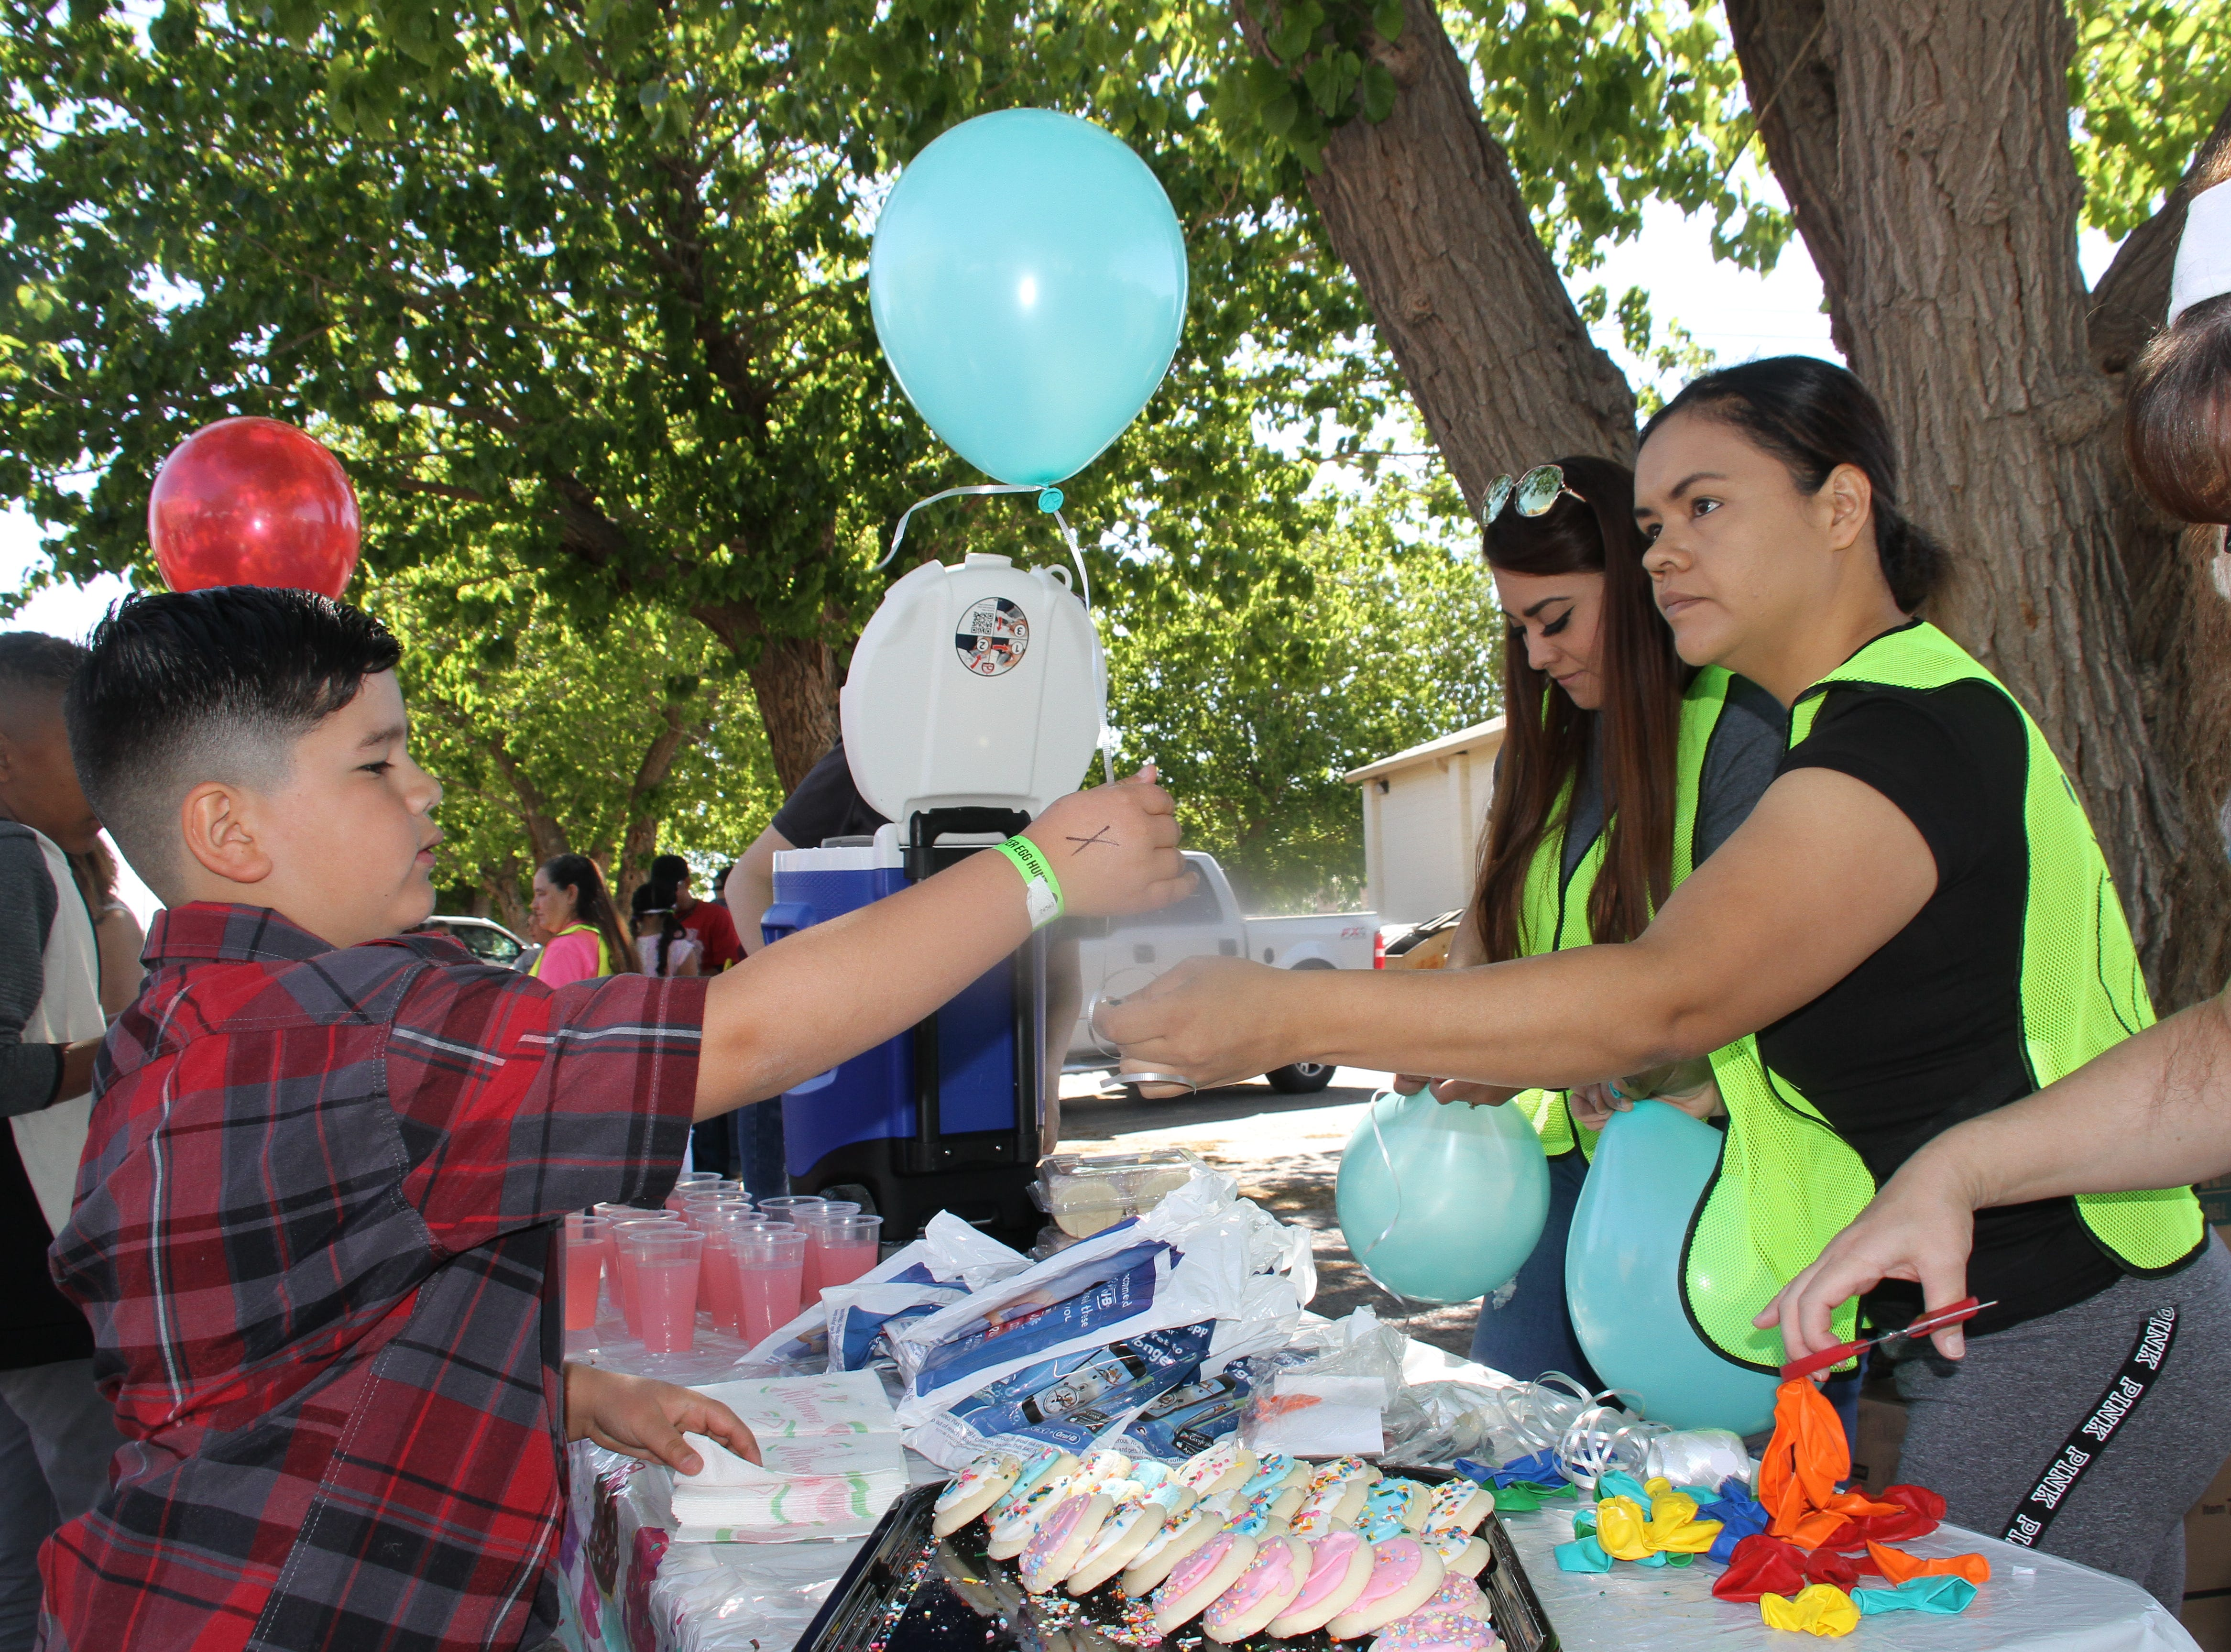 Deming Children's Dentistry and Orthodontics offering balloons, lemonade and sugar cookies.